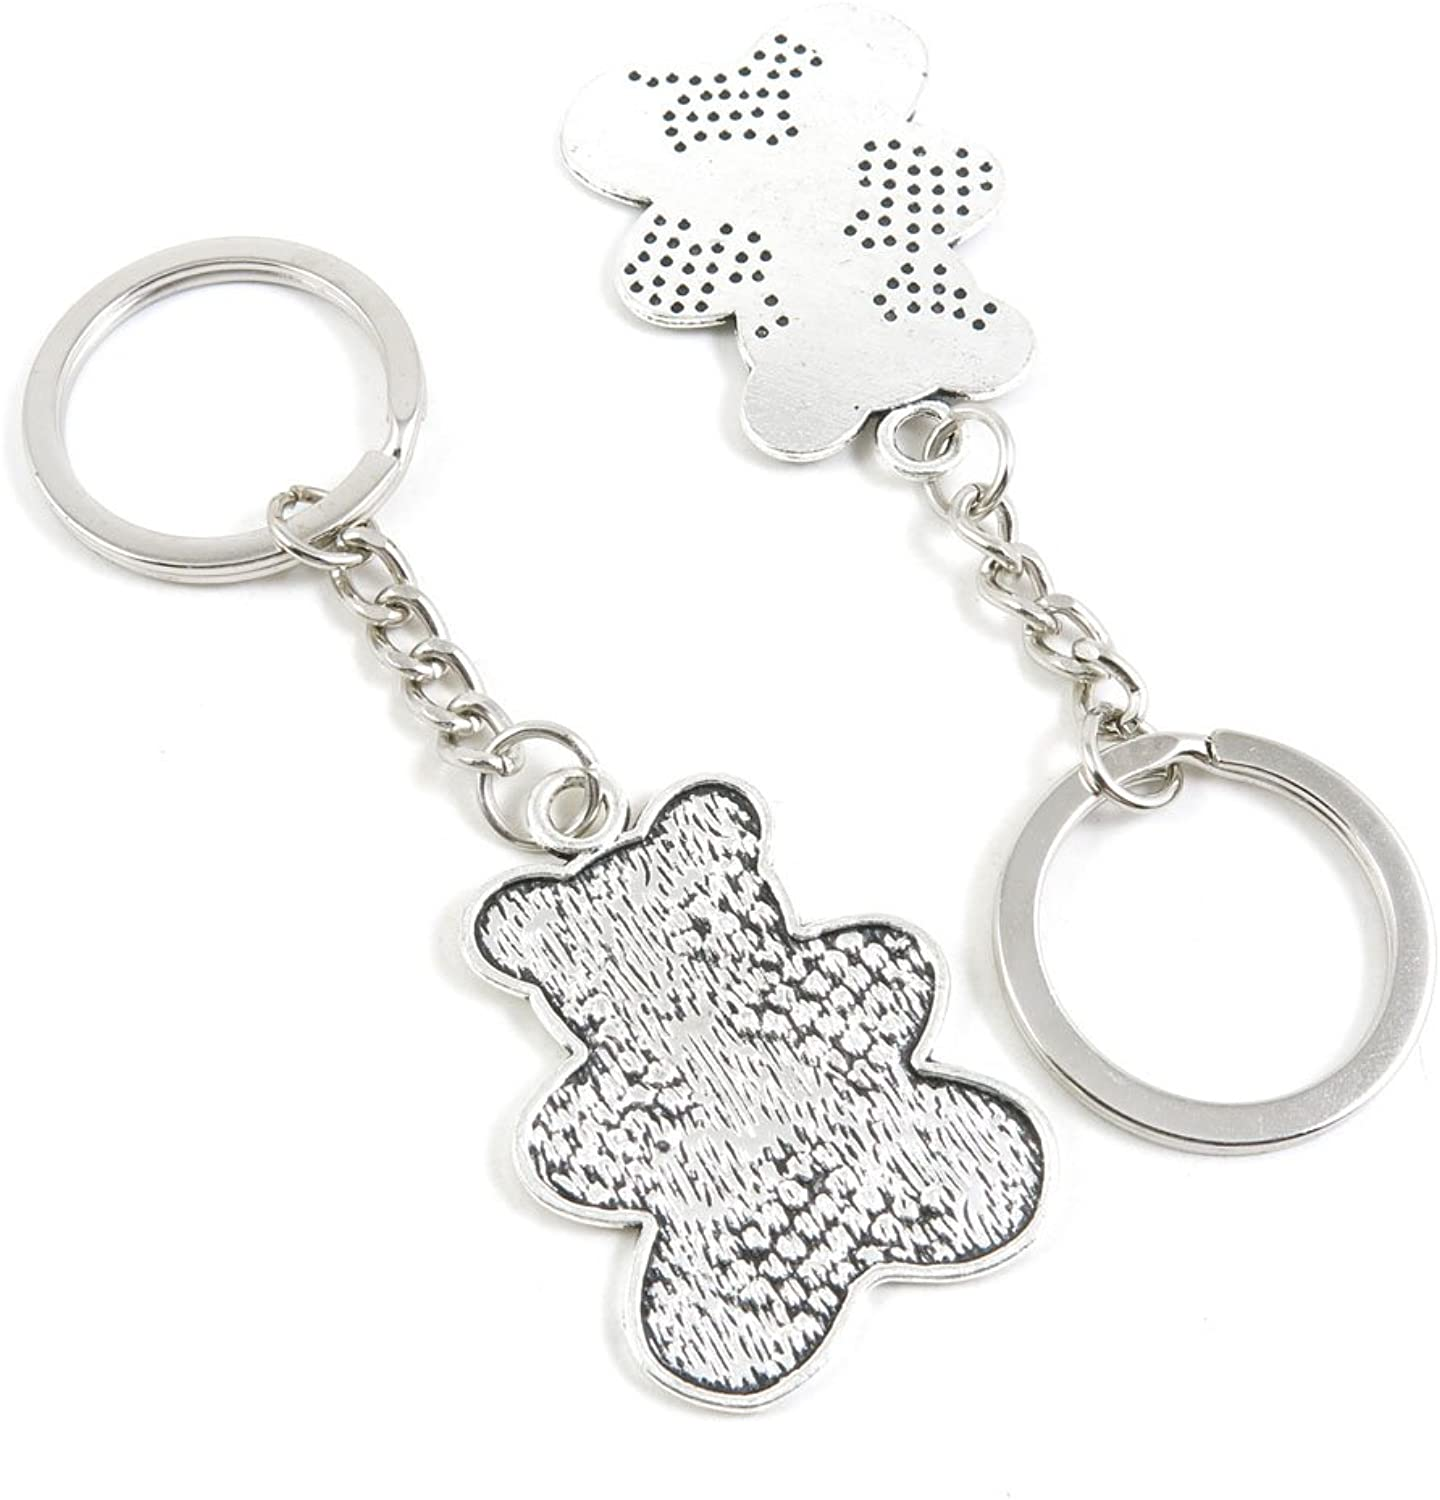 100 Pieces Keychain Keyring Door Car Key Chain Ring Tag Charms Bulk Supply Jewelry Making Clasp Findings D5QG7S Teddy Bear Winnie